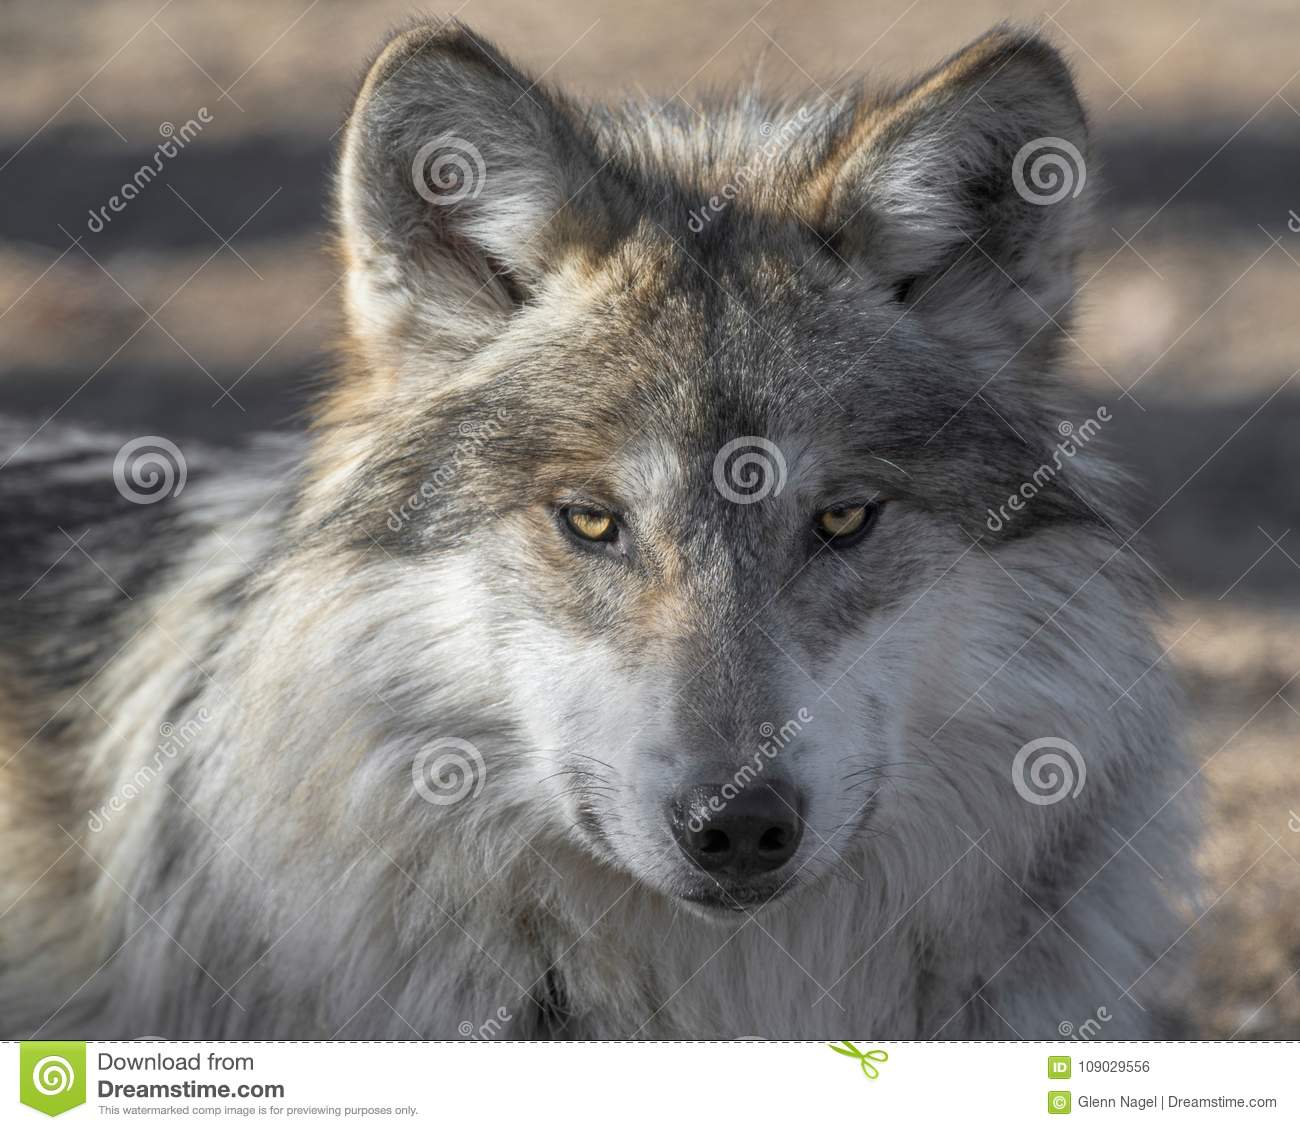 Mexican gray wolf closeup portrait